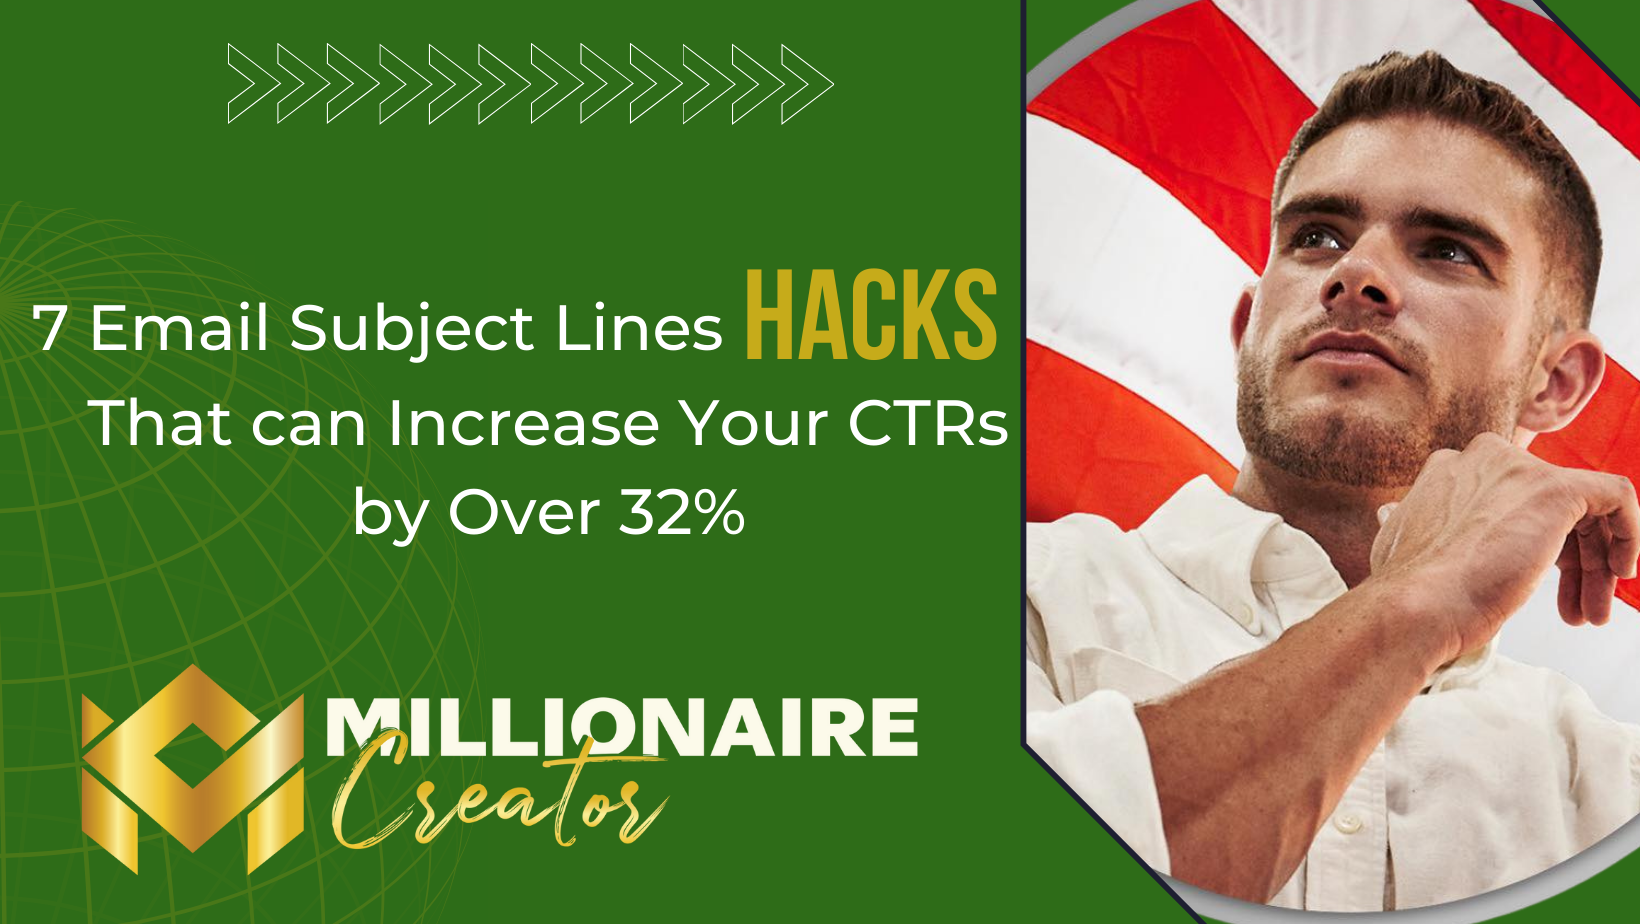 7 email tips to help increase CTR with Colin Wayne from Millionaire Creator